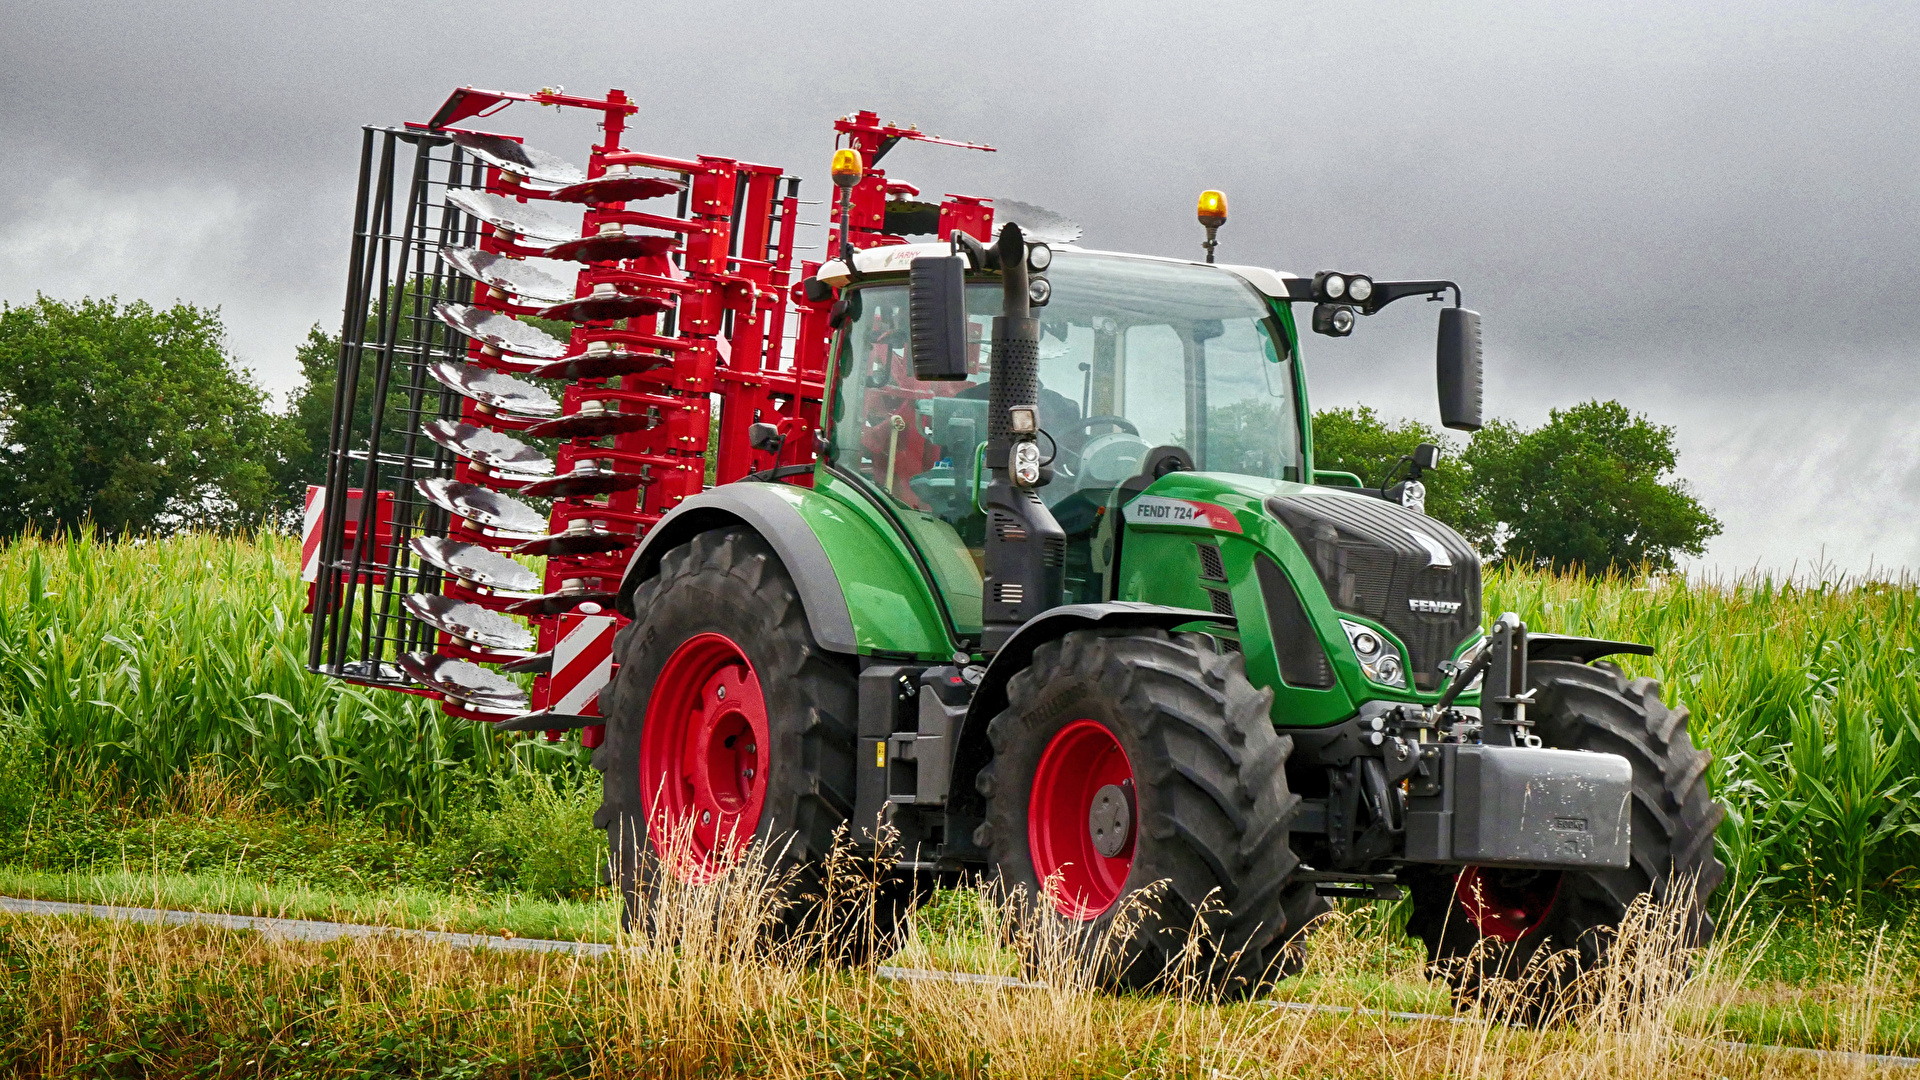 Wallpaper Agricultural machinery Tractor 2011 18 Fendt 724 1920x1080 1920x1080